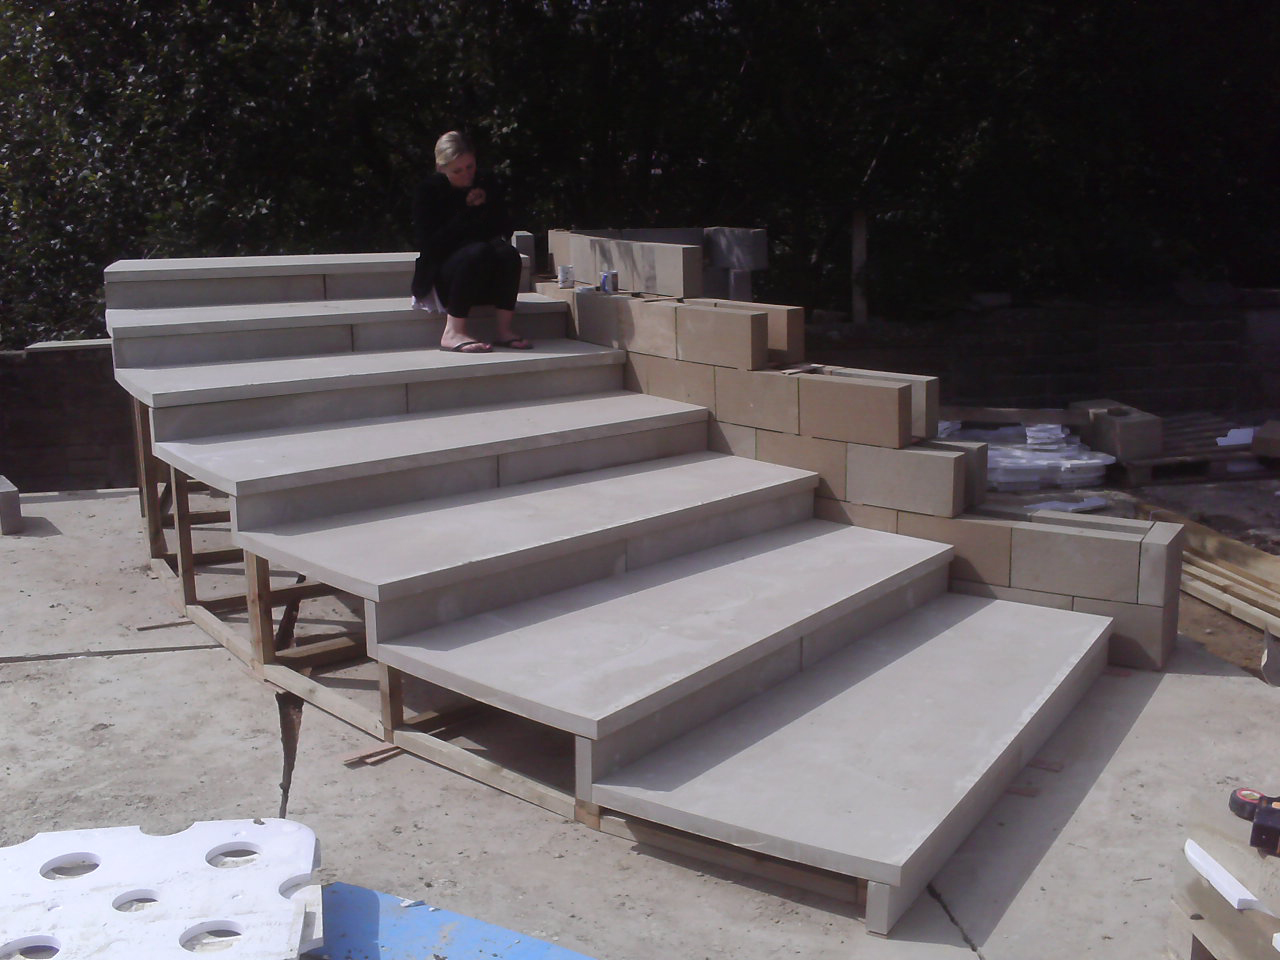 Curved Step Mock-up pre-Construction